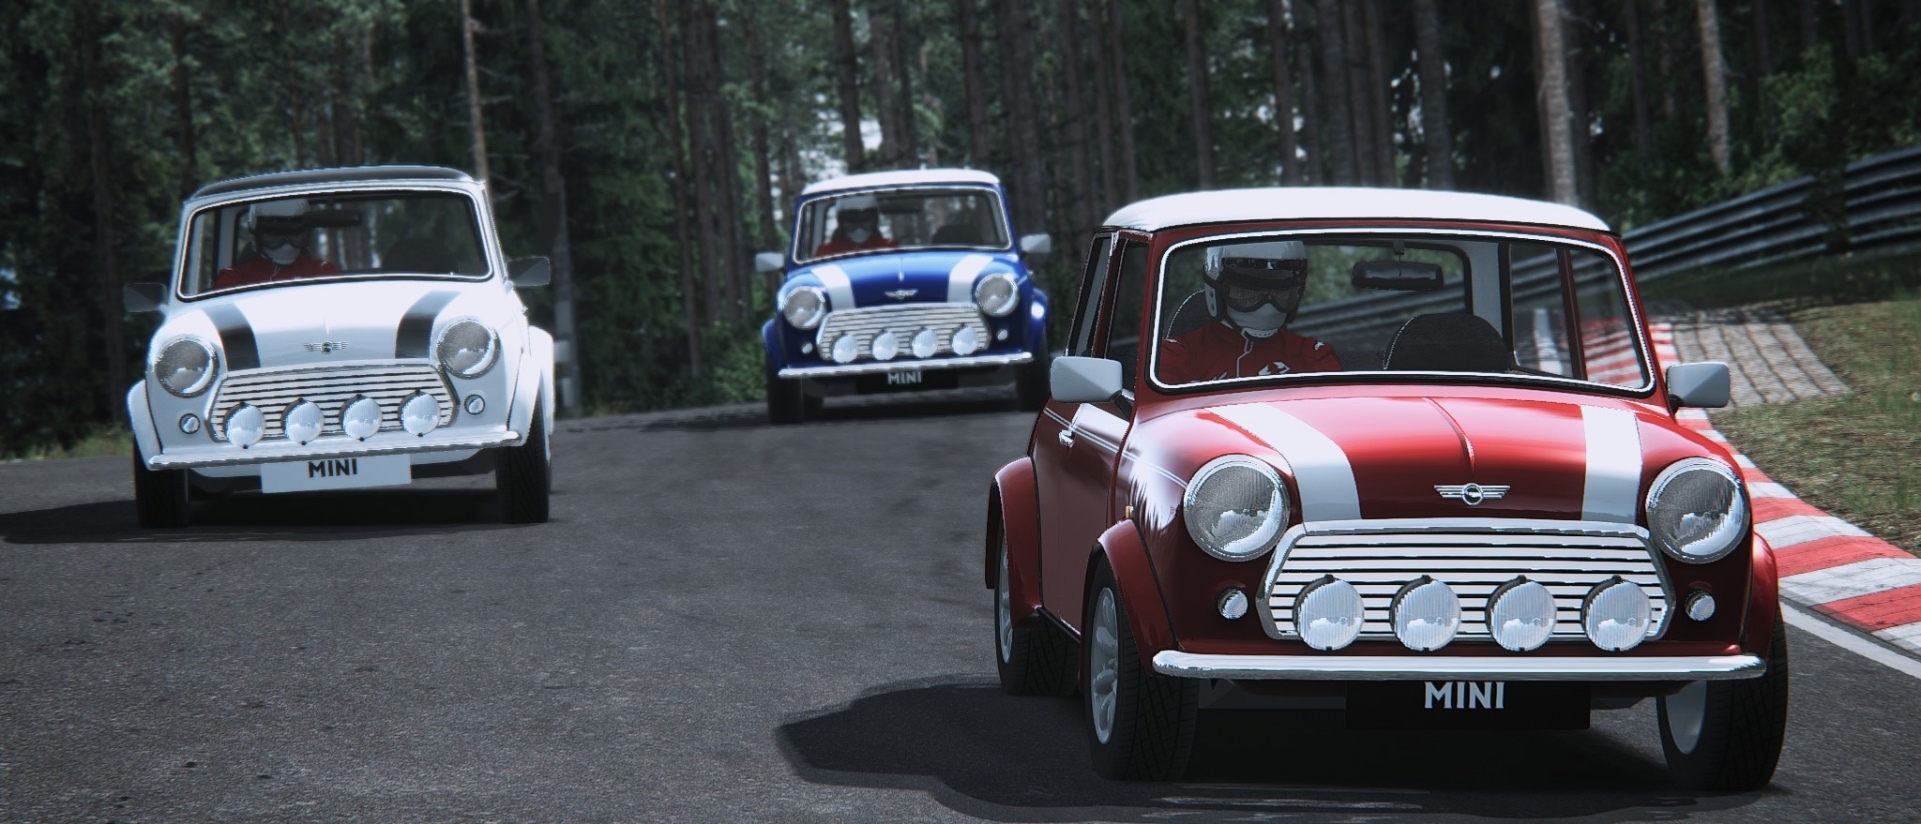 Assetto Corsa - Mini Cooper 1.3 Green Hell 05